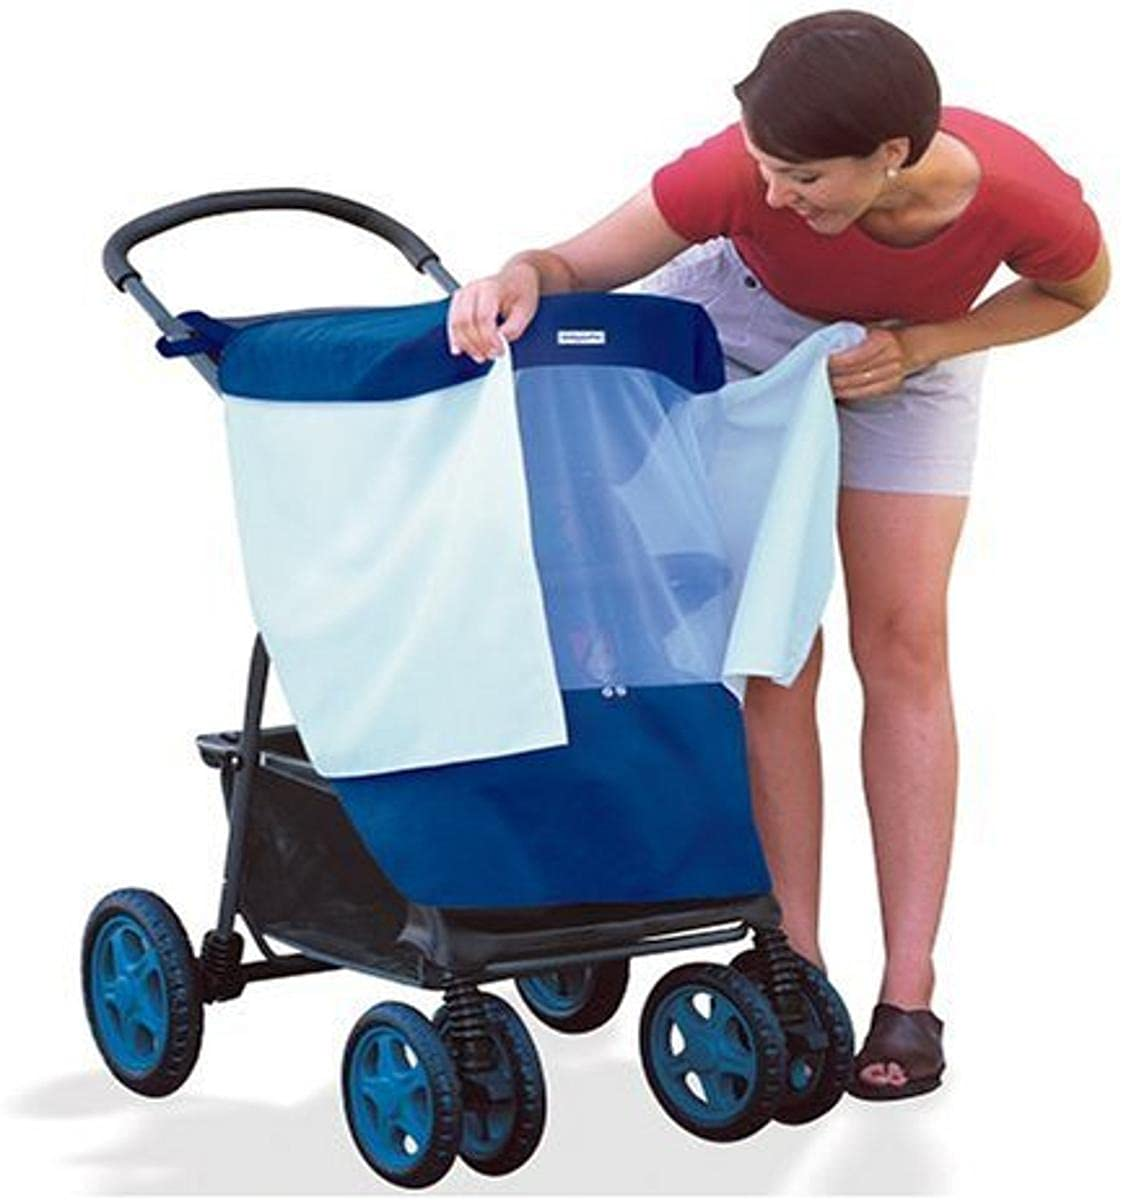 BabyShade Stroller Cover Protects Infants in Canopied Strollers from Sun, Rain, Wind and Flying Insects (Discontinued by Manufacturer)